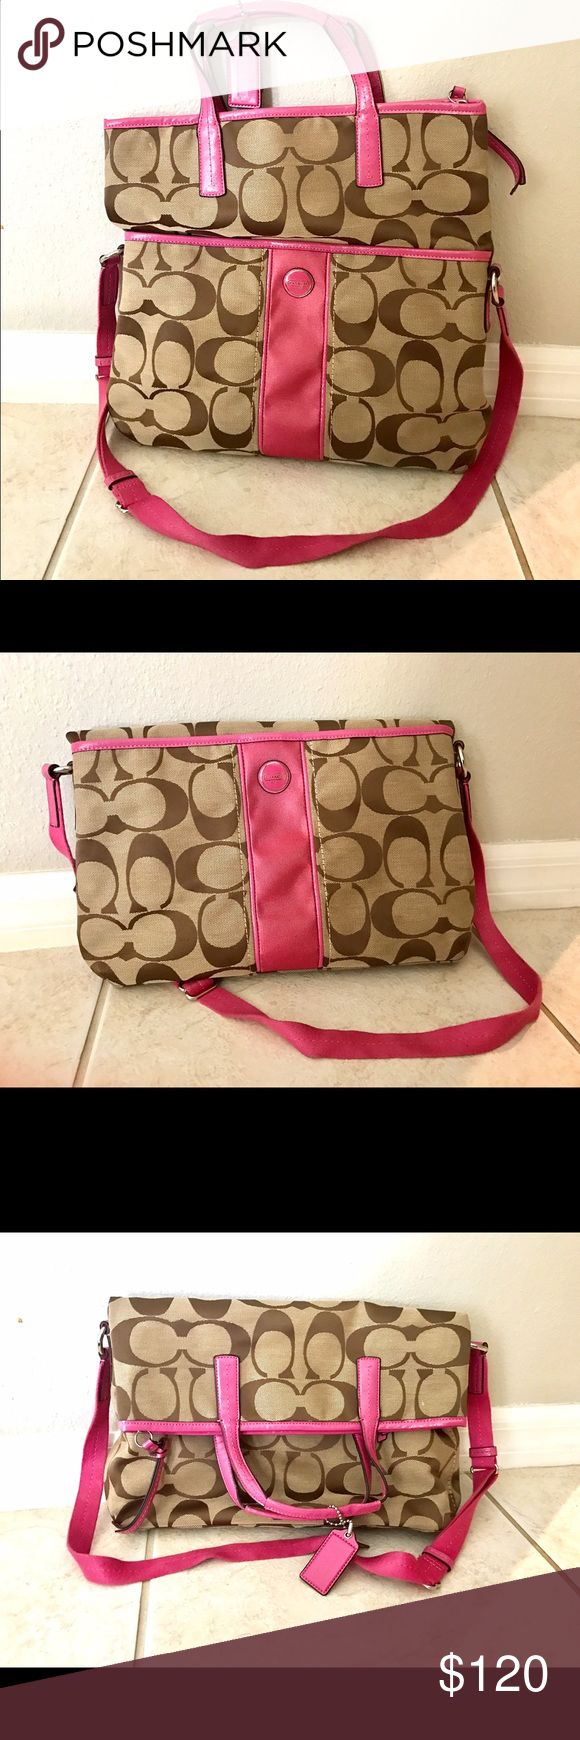 NWOT Flip over style Coach purse.. Perfect versatile purse.  It can carry a laptop or you can fold it over like a medium sized crossover purse.  Authentic, and absolutely perfect! You'll love the variations you have with this purse! Coach Bags Crossbody Bags